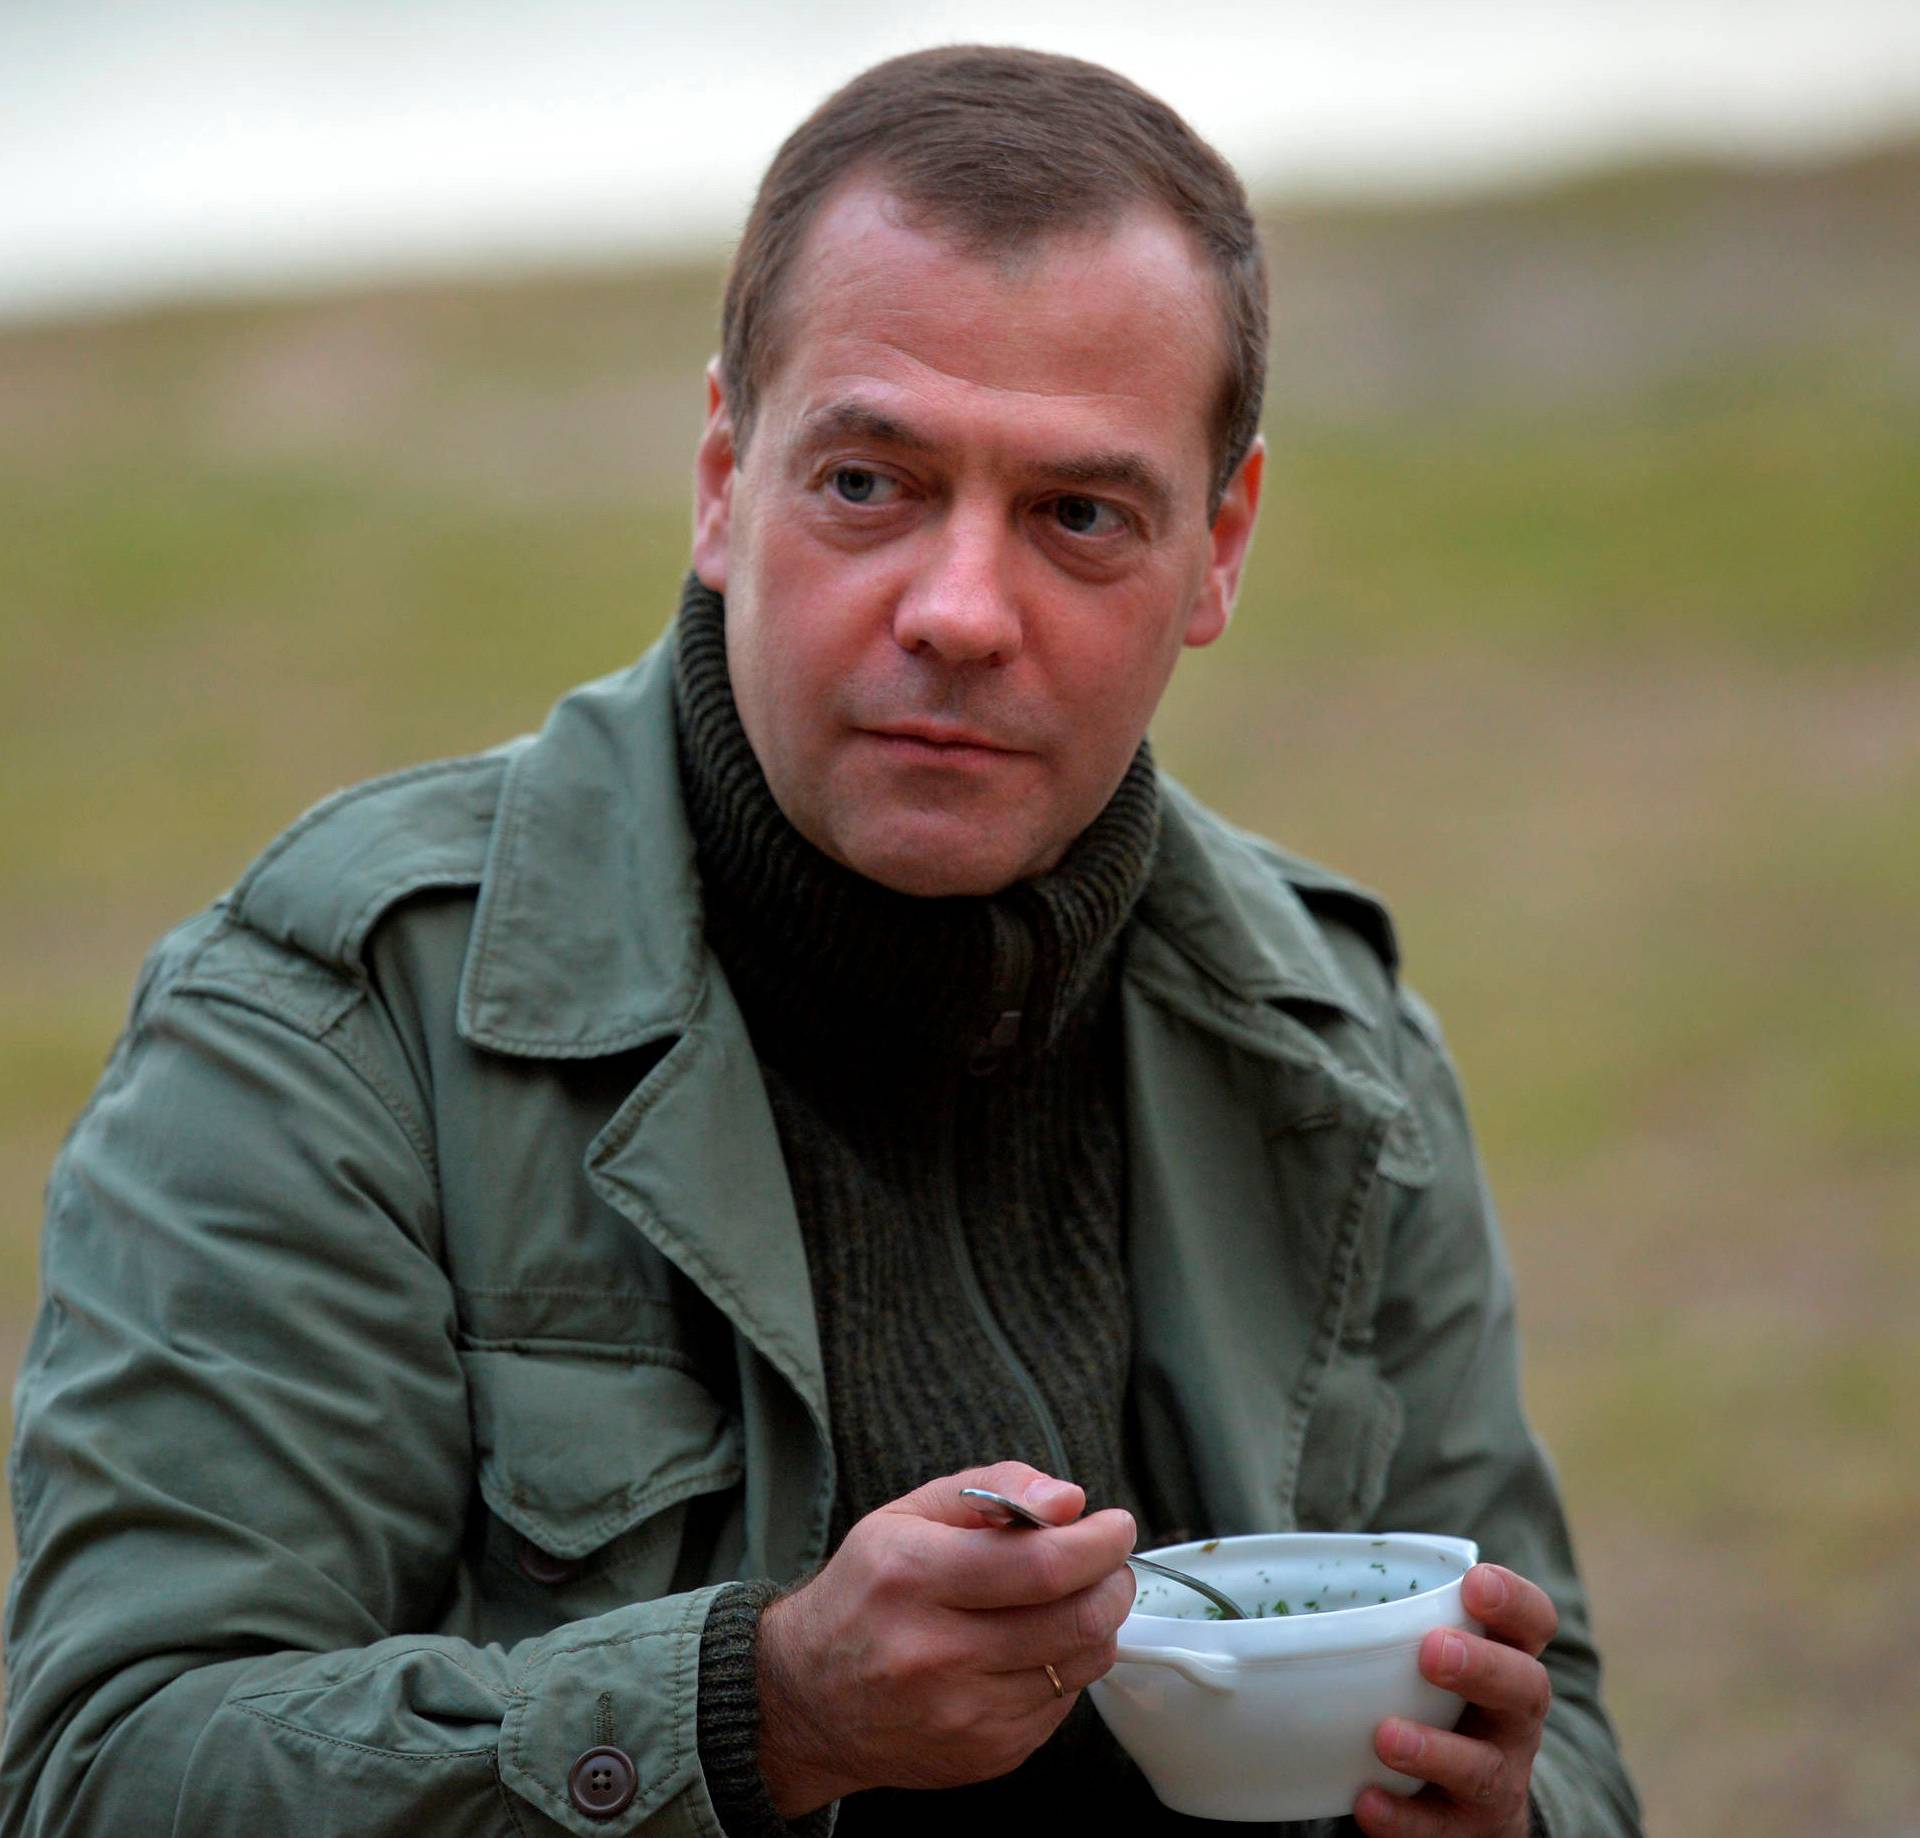 Russian Prime Minister Dmitry Medvedev is seen after touring on Lake Ilmen in Novgorod region, Russia